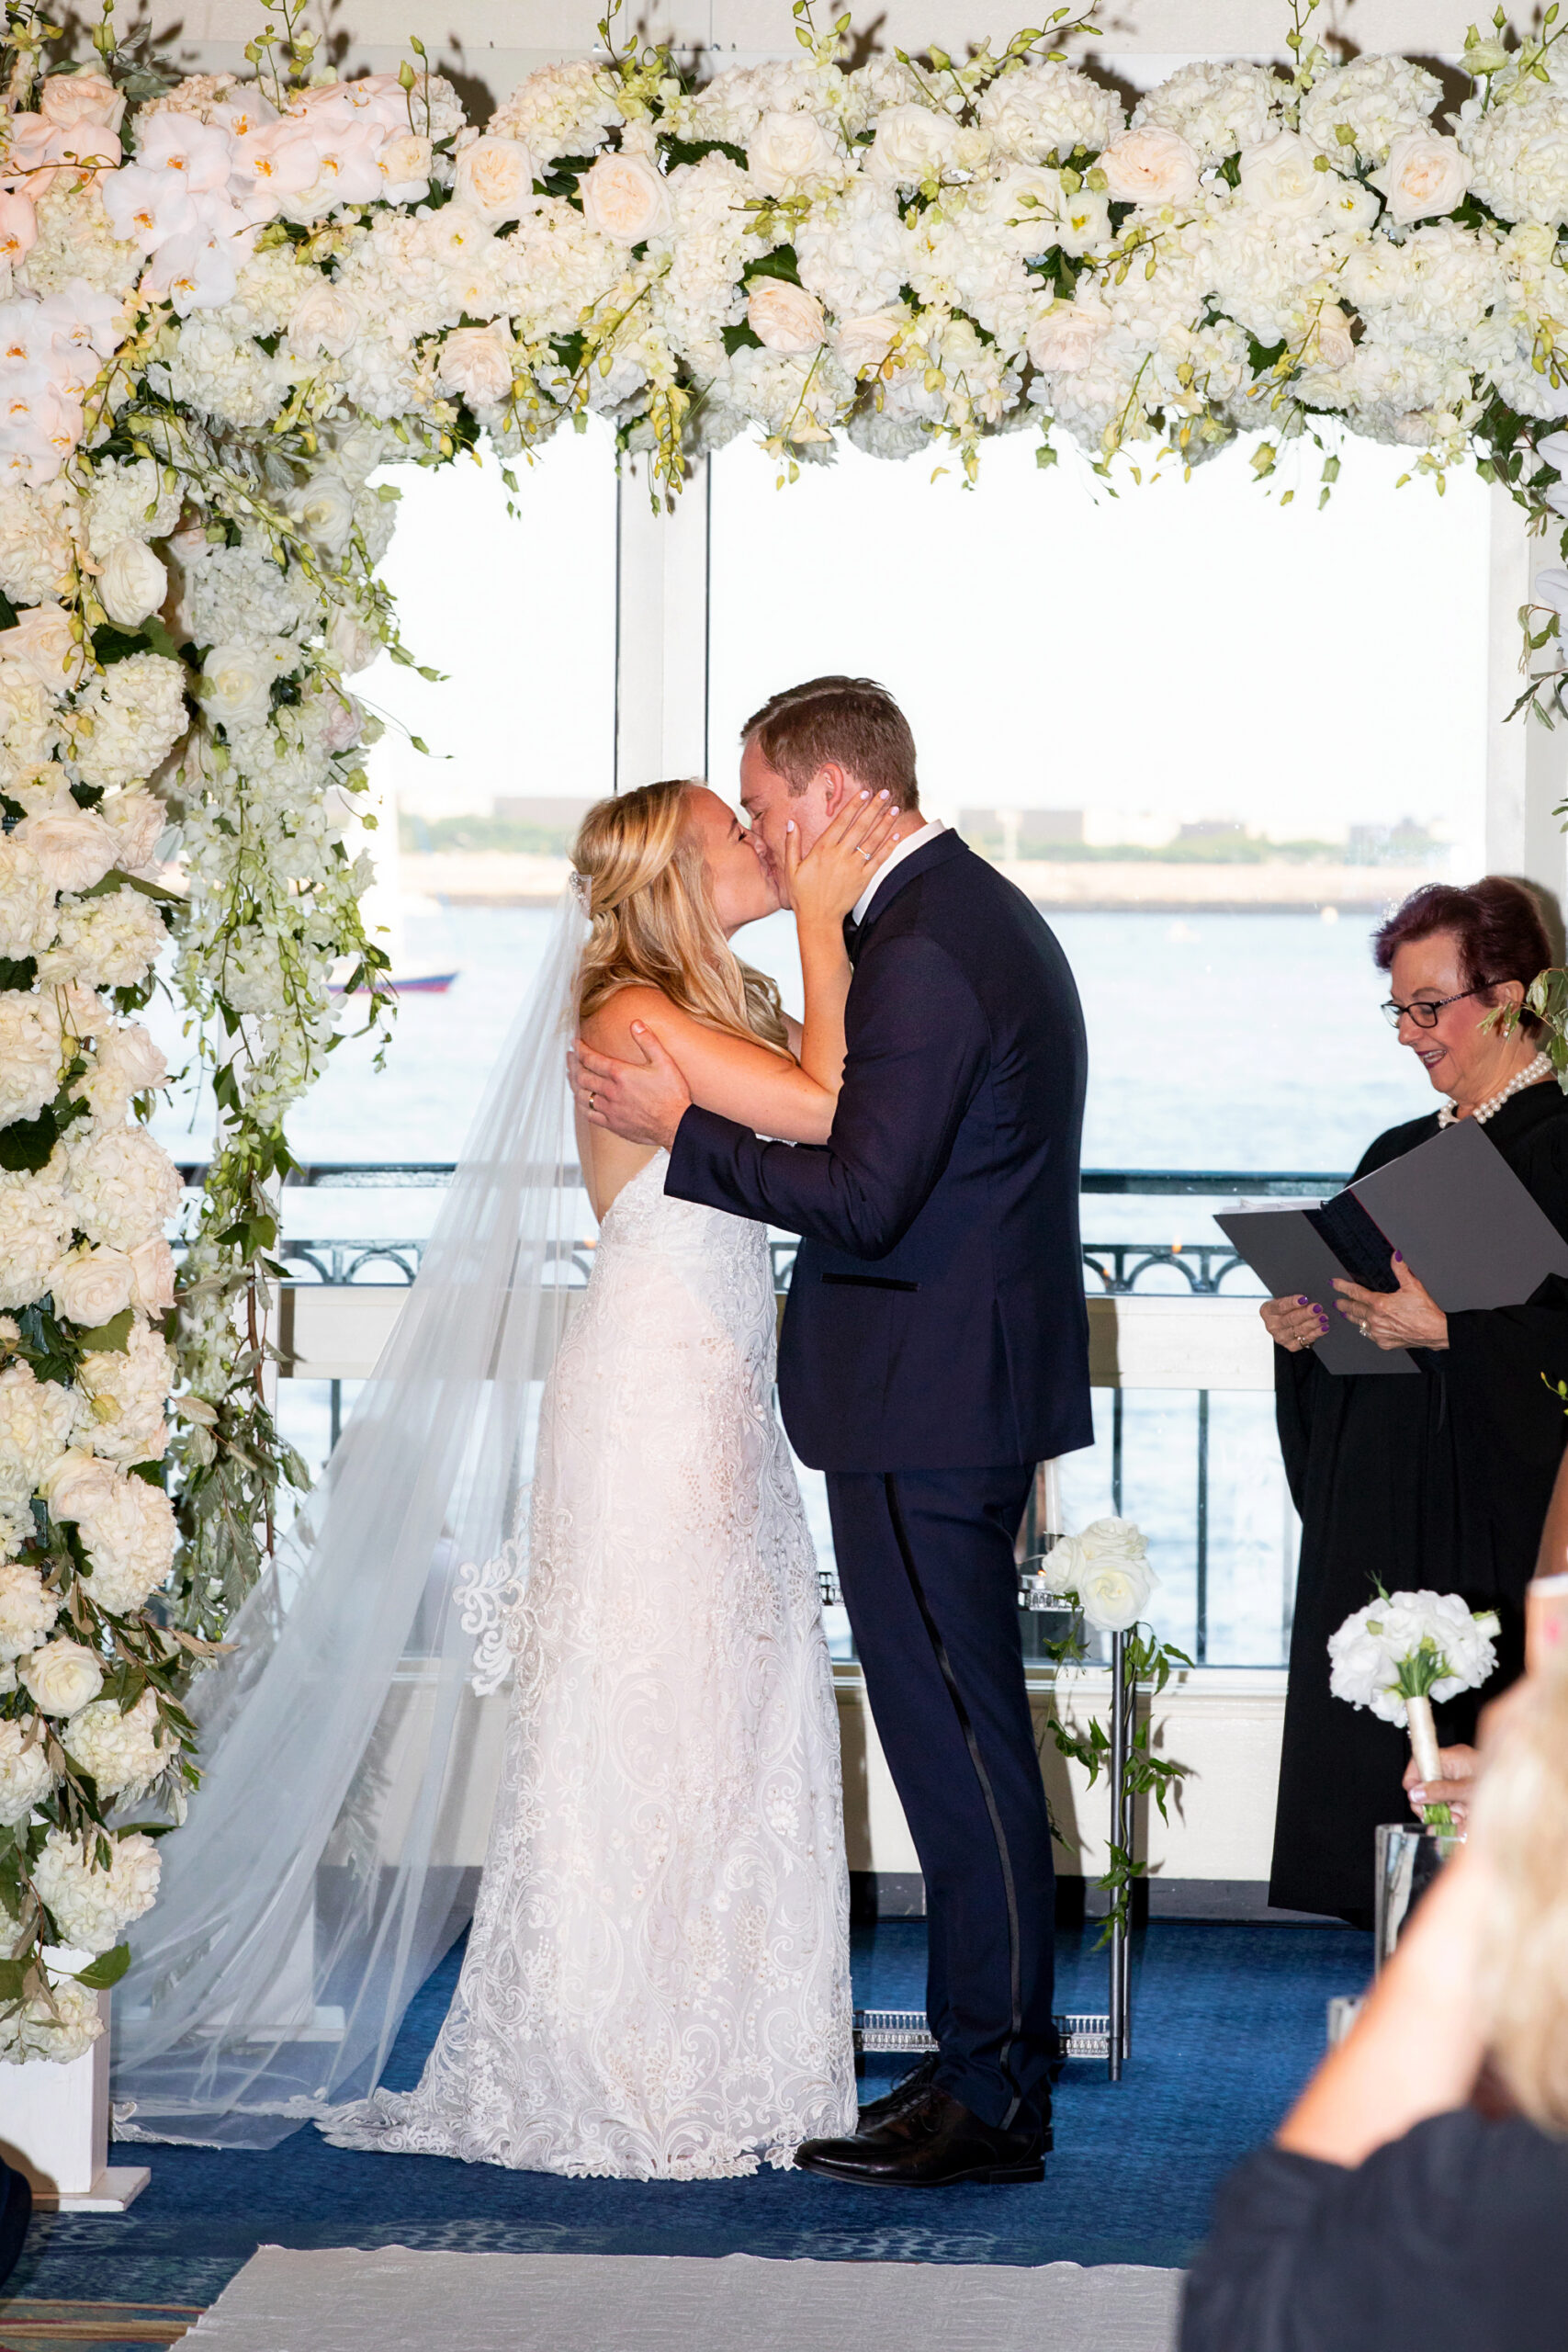 Kiss at End of Ceremony